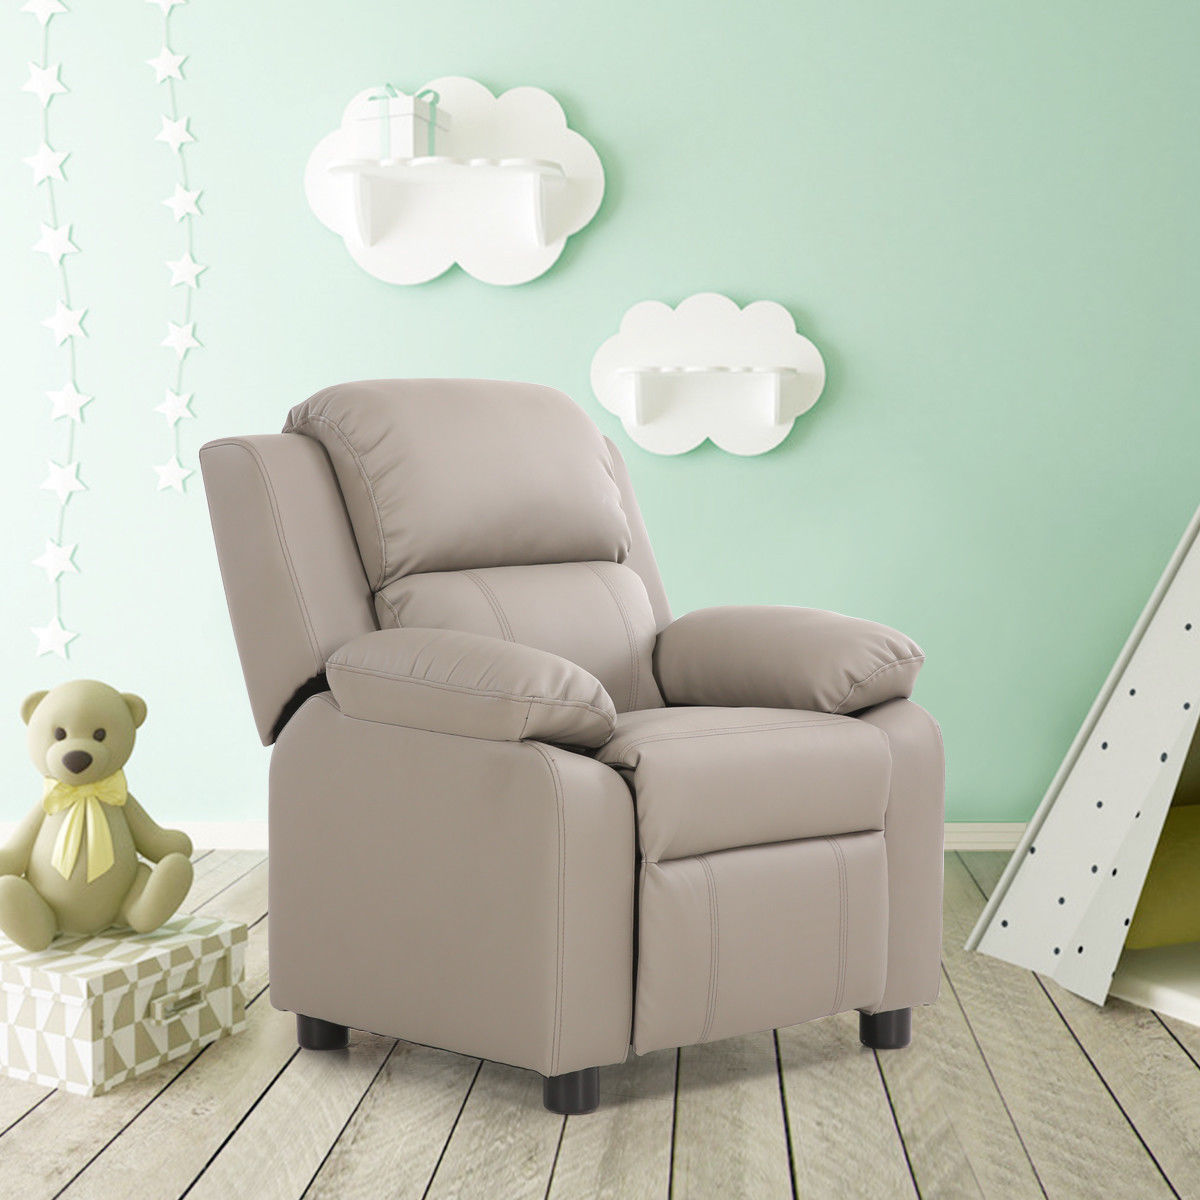 Costway Gray Deluxe Padded Kids Sofa Armchair Recliner Headrest Children w Storage Arms by Costway